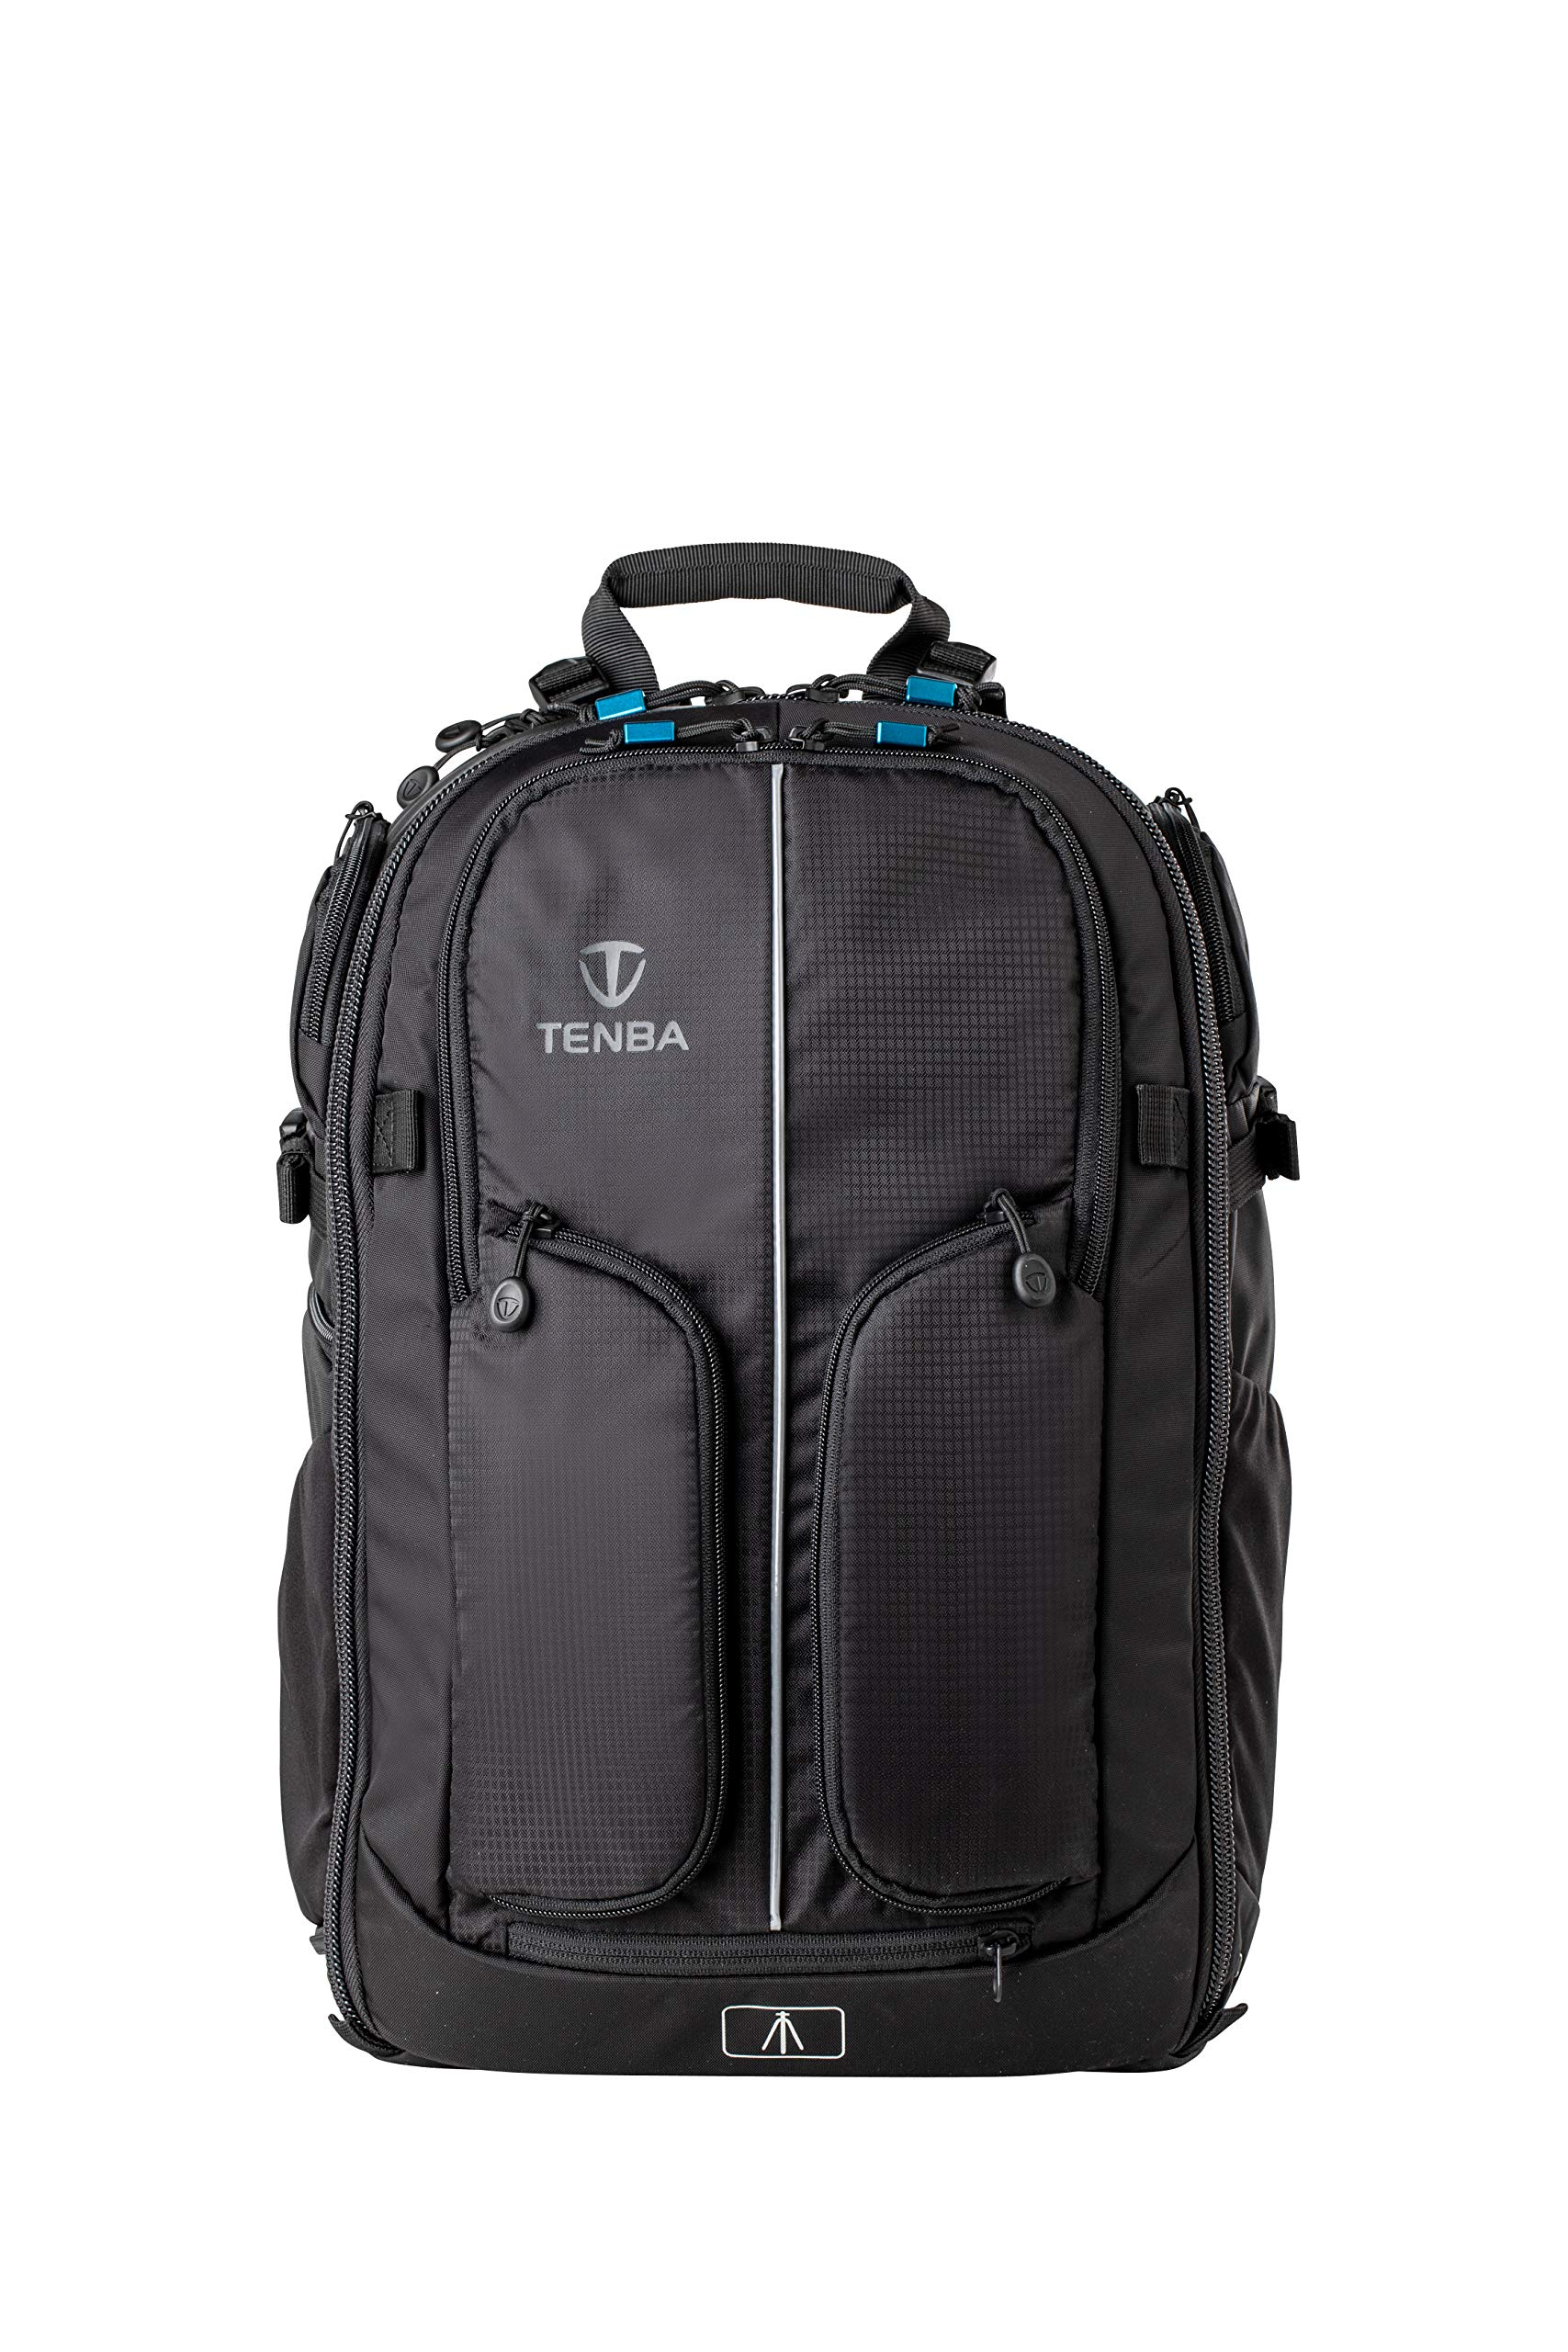 Tenba Shootout 24L Backpack Bags (632-422)